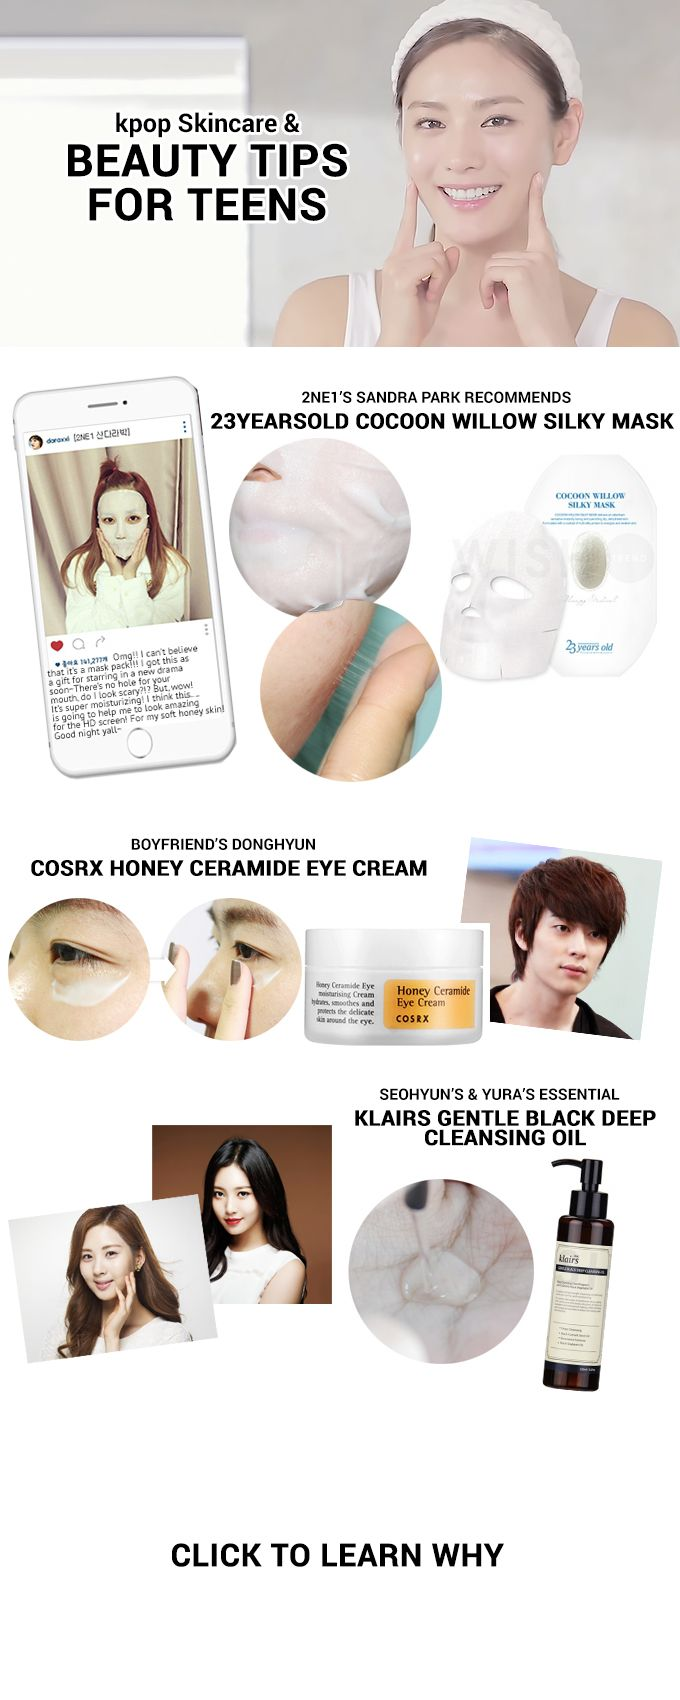 Kpop Skincare & Beauty Tips for Teens - WISHTREND GLAM  Beauty